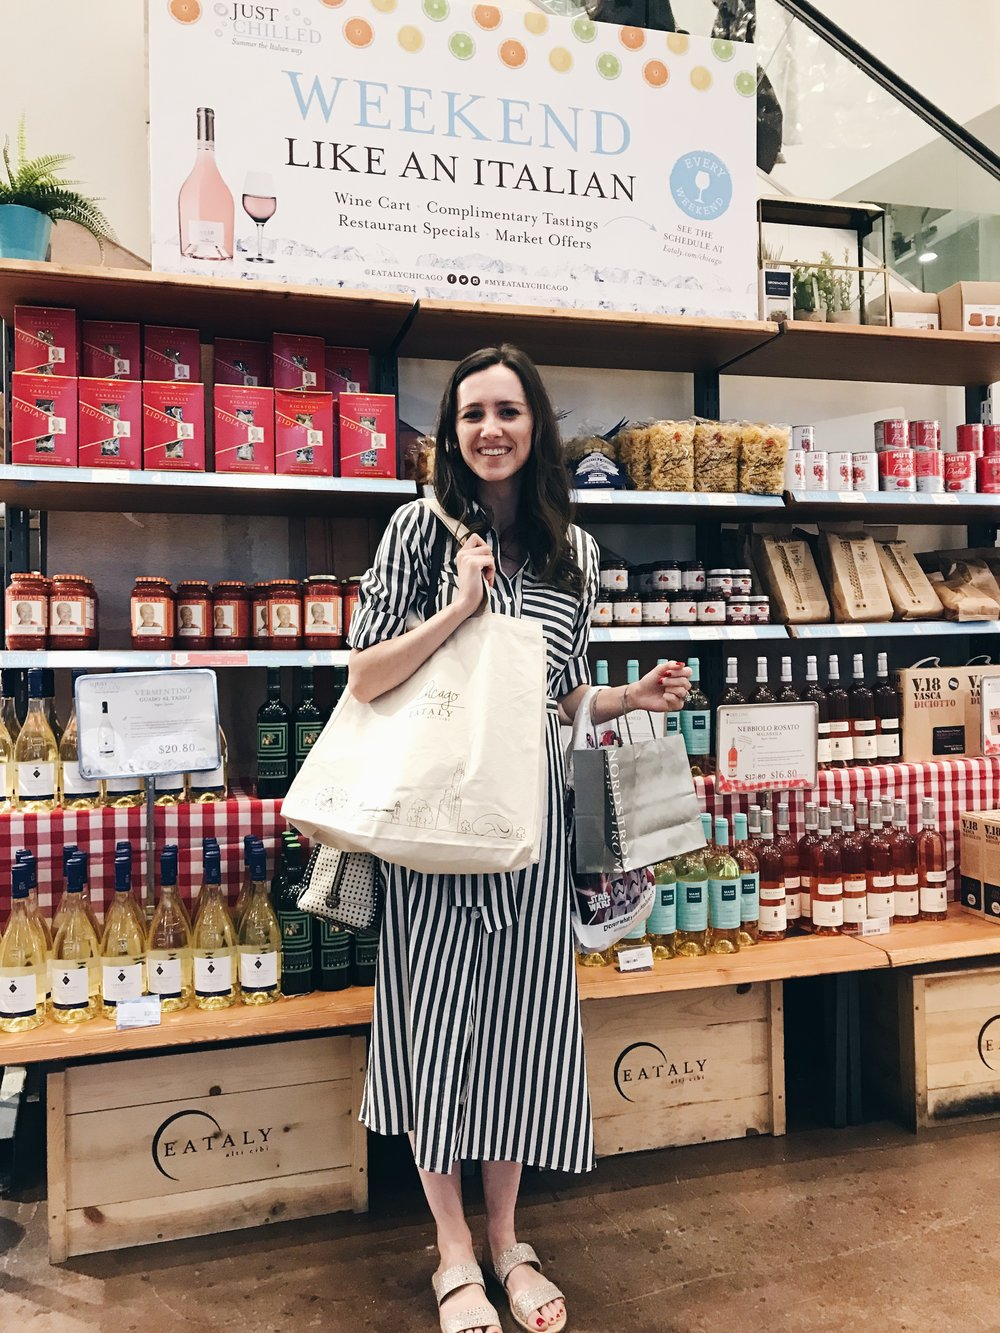 On the first floor market at Eataly! So happy with my new canvas tote!